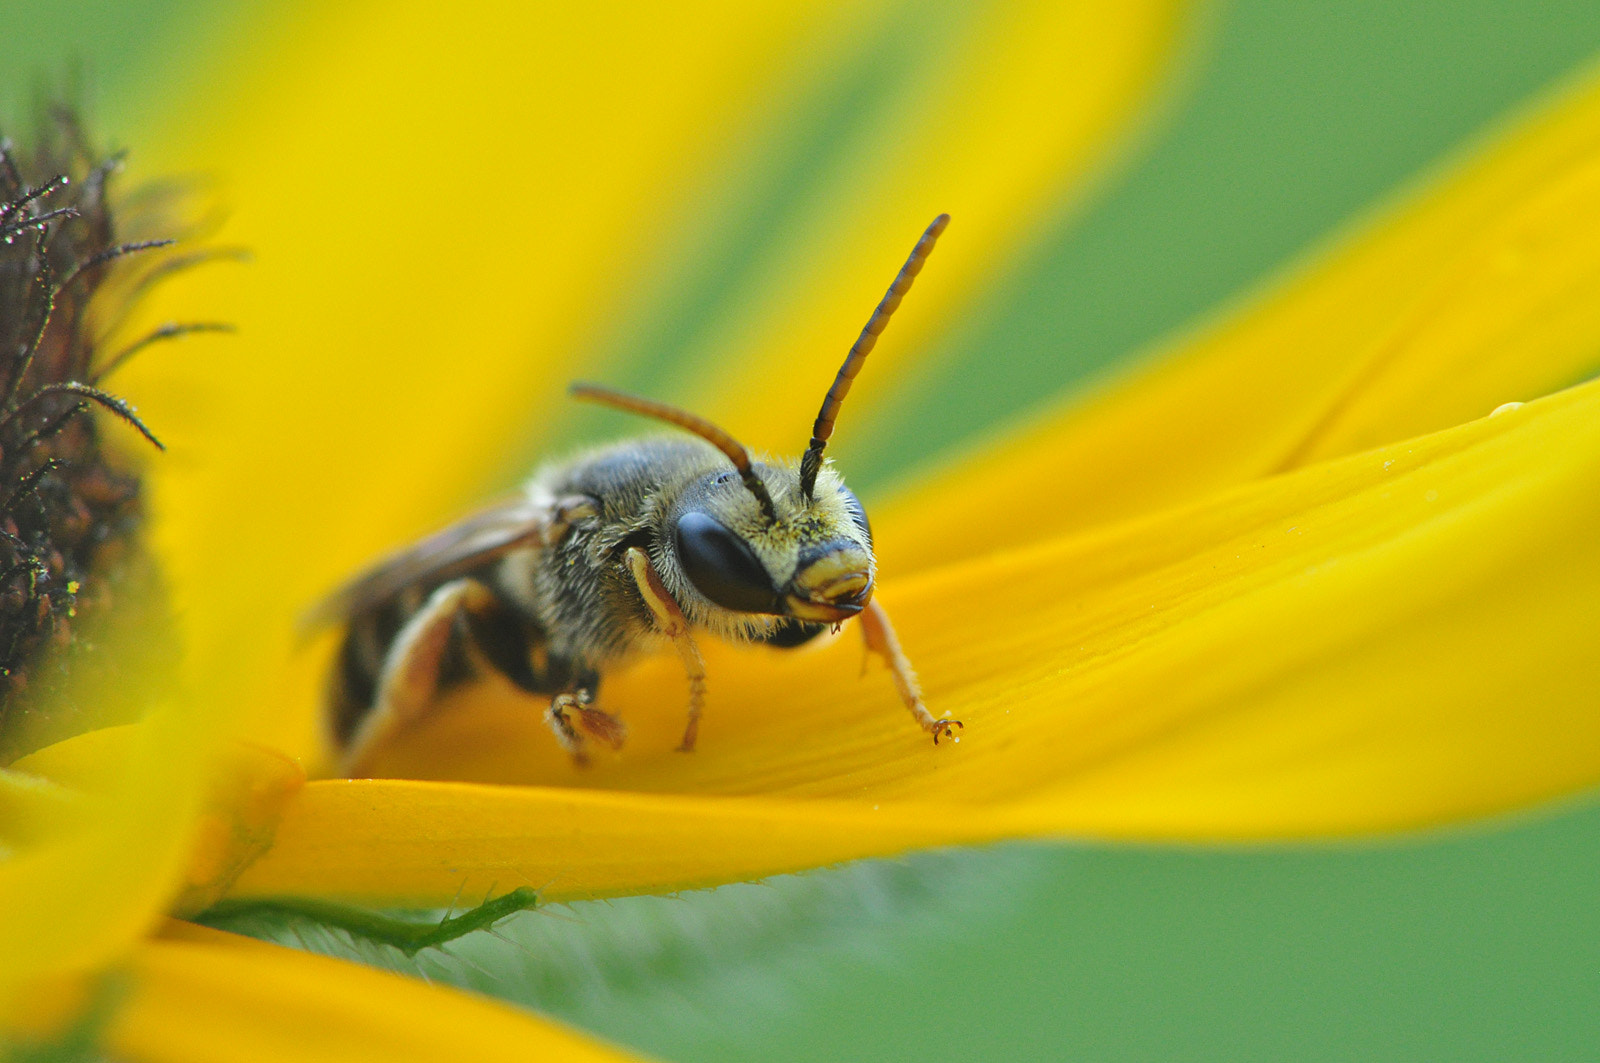 Photograph Unknown Bee Species by Suzanne Williams on 500px